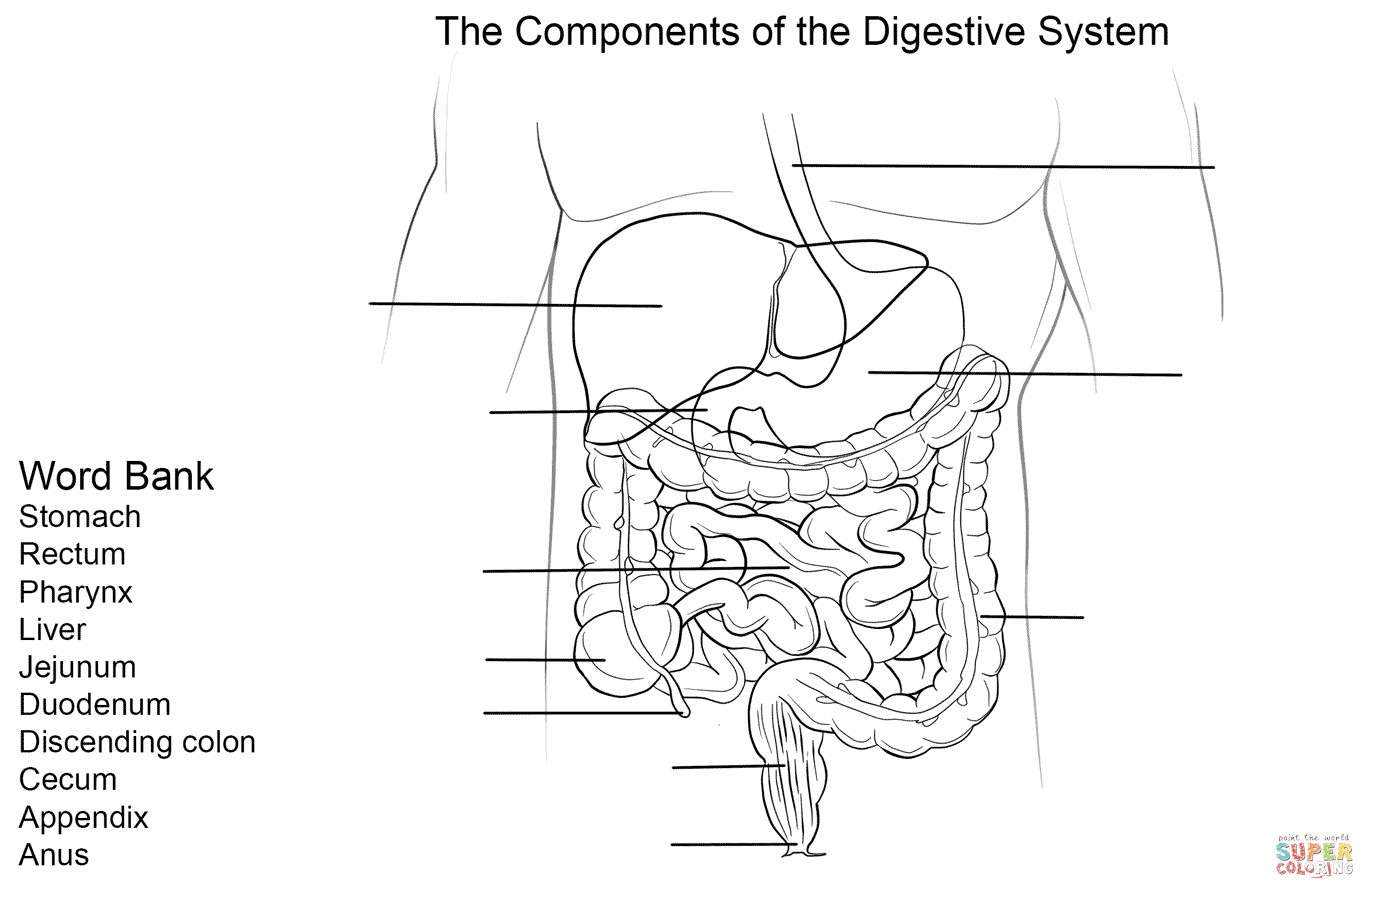 Groß The Anatomy And Physiology Of Animals Digestive System ...